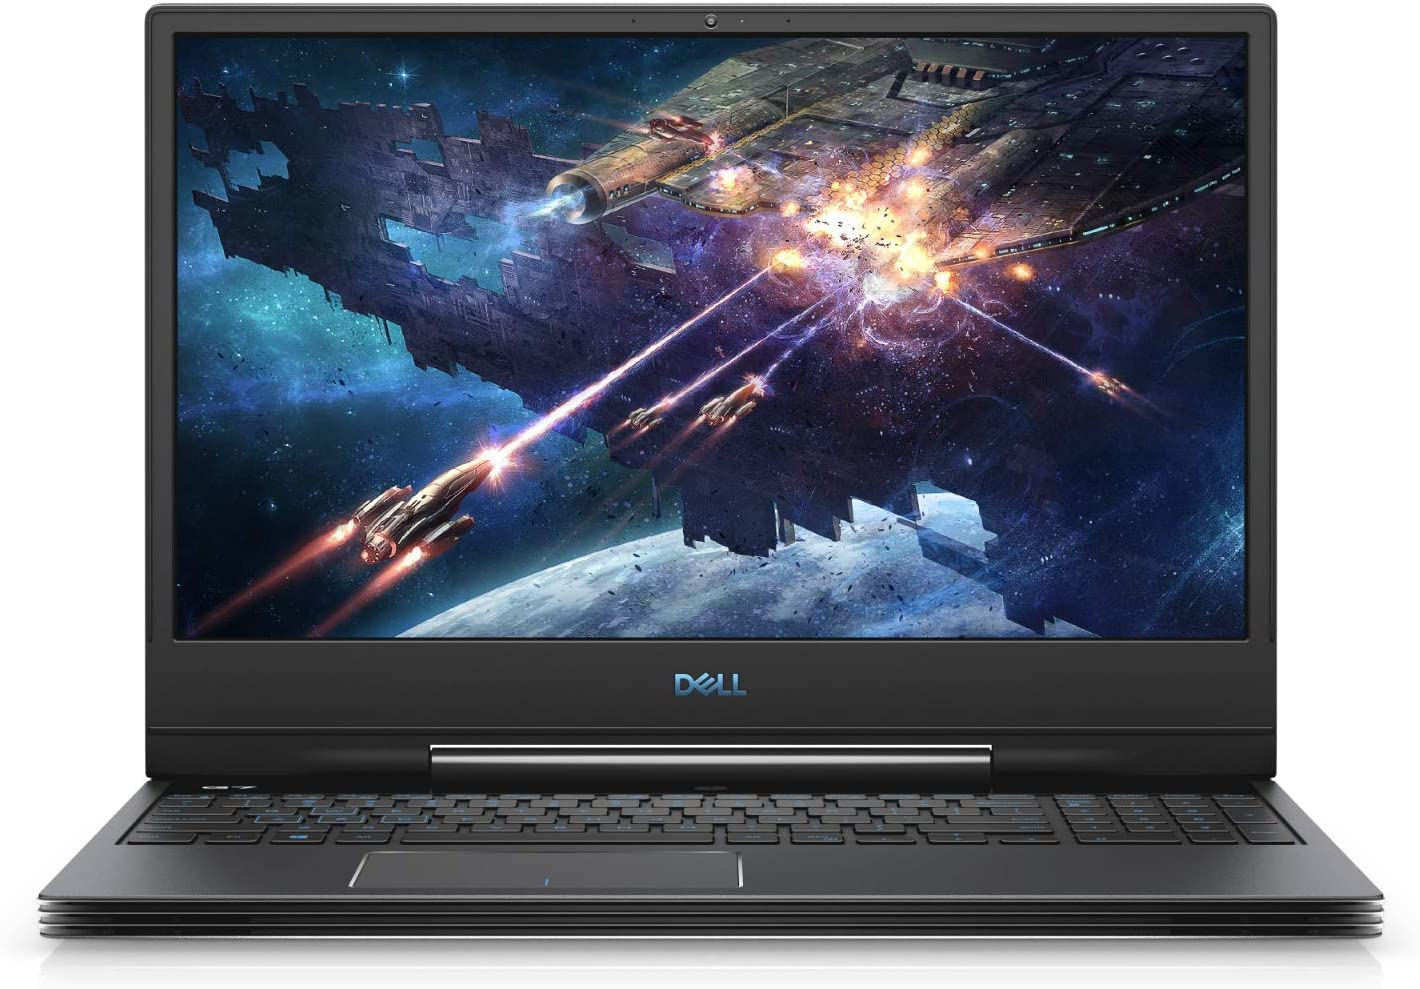 "2019 Dell G7 15.6"" FHD Gaming Laptop Computer, 9th Gen Intel Hexa-Core i7-9750H up to 4.5GHz, 32GB DDR4 RAM, 1TB HDD + 512GB PCIe SSD, GeForce GTX 1660 Ti 6GB, 802.11AC WiFi, Bluetooth 5.0, Windows 10"